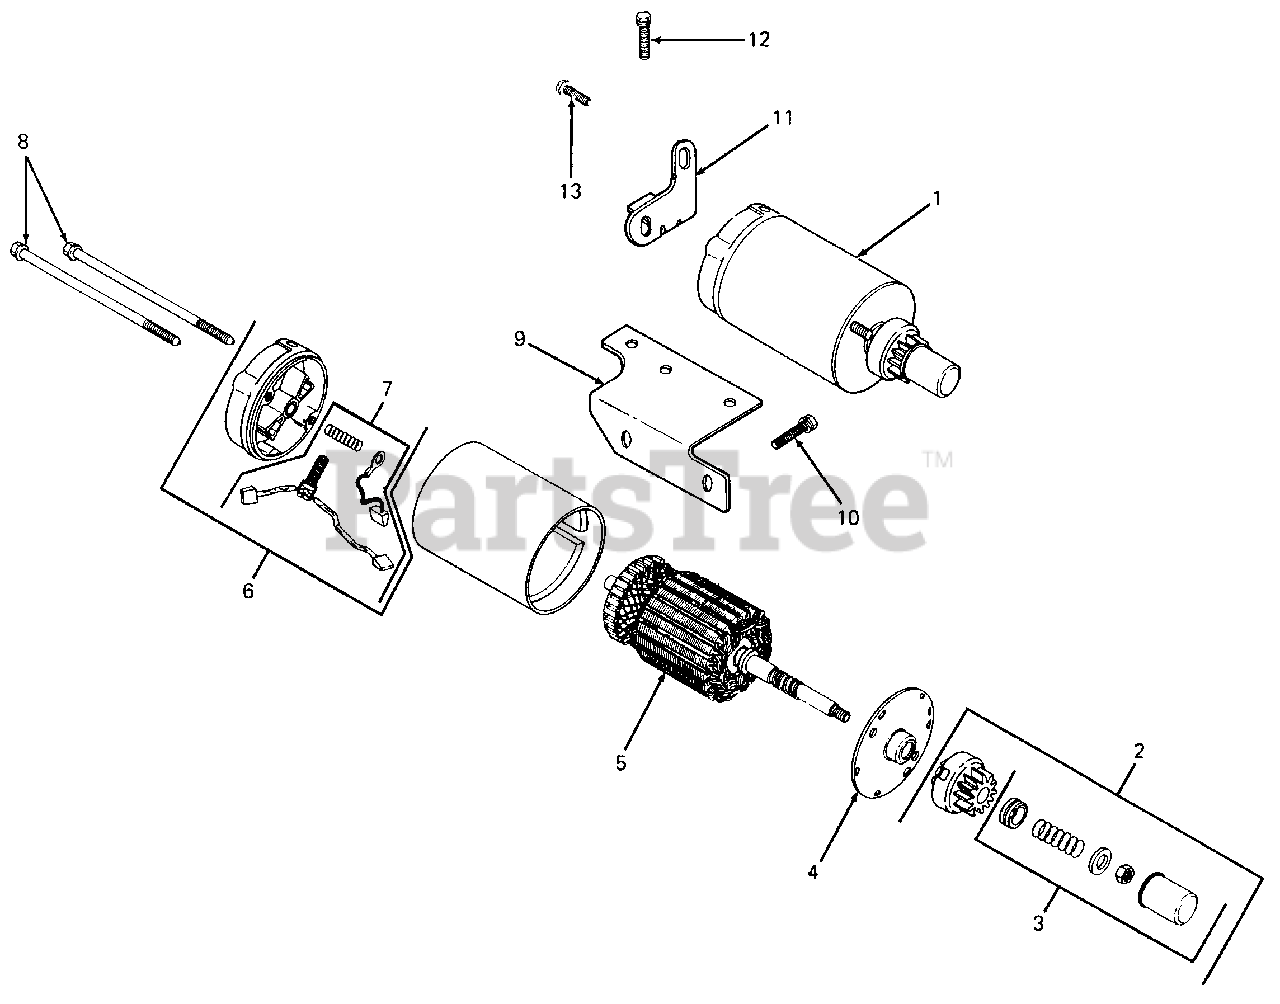 Cub Cadet Parts On The Electric Start Diagram For 1050